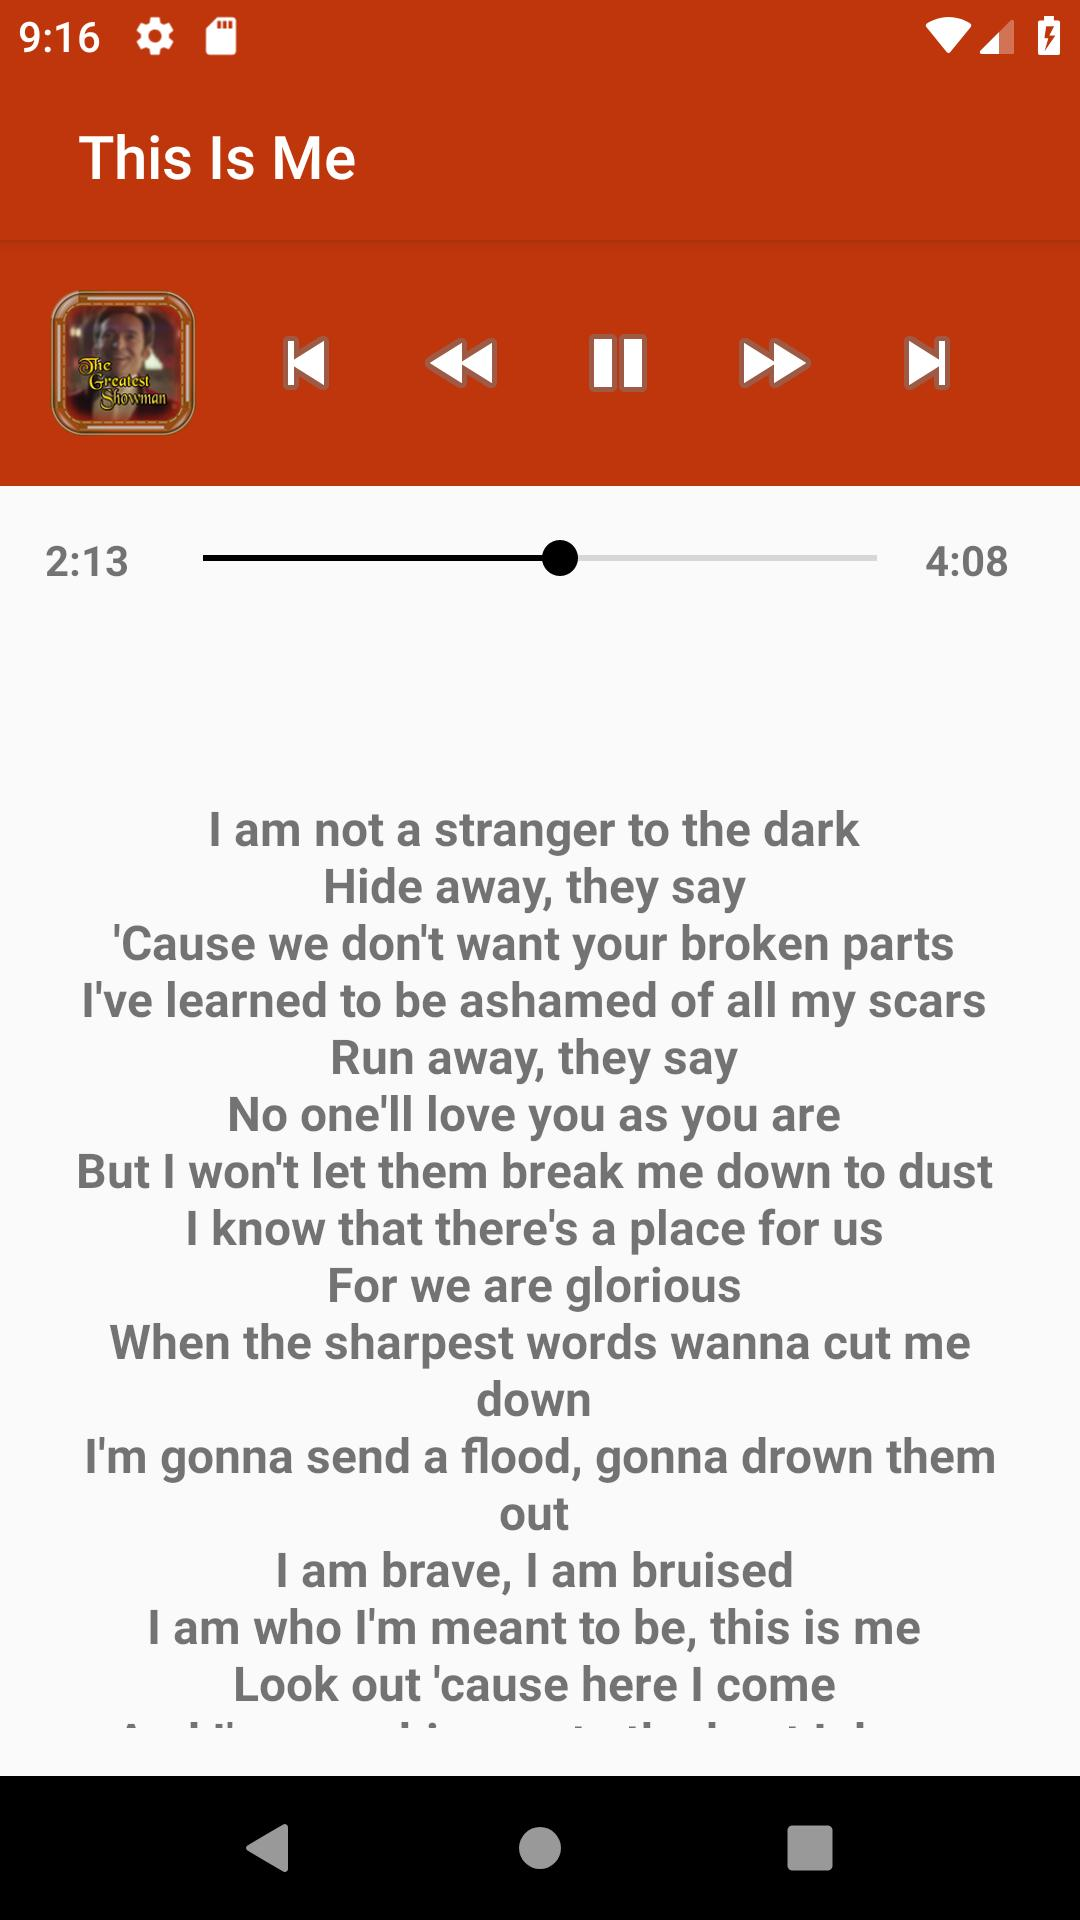 The Greatest Showman Songs Lyrics for Android - APK Download